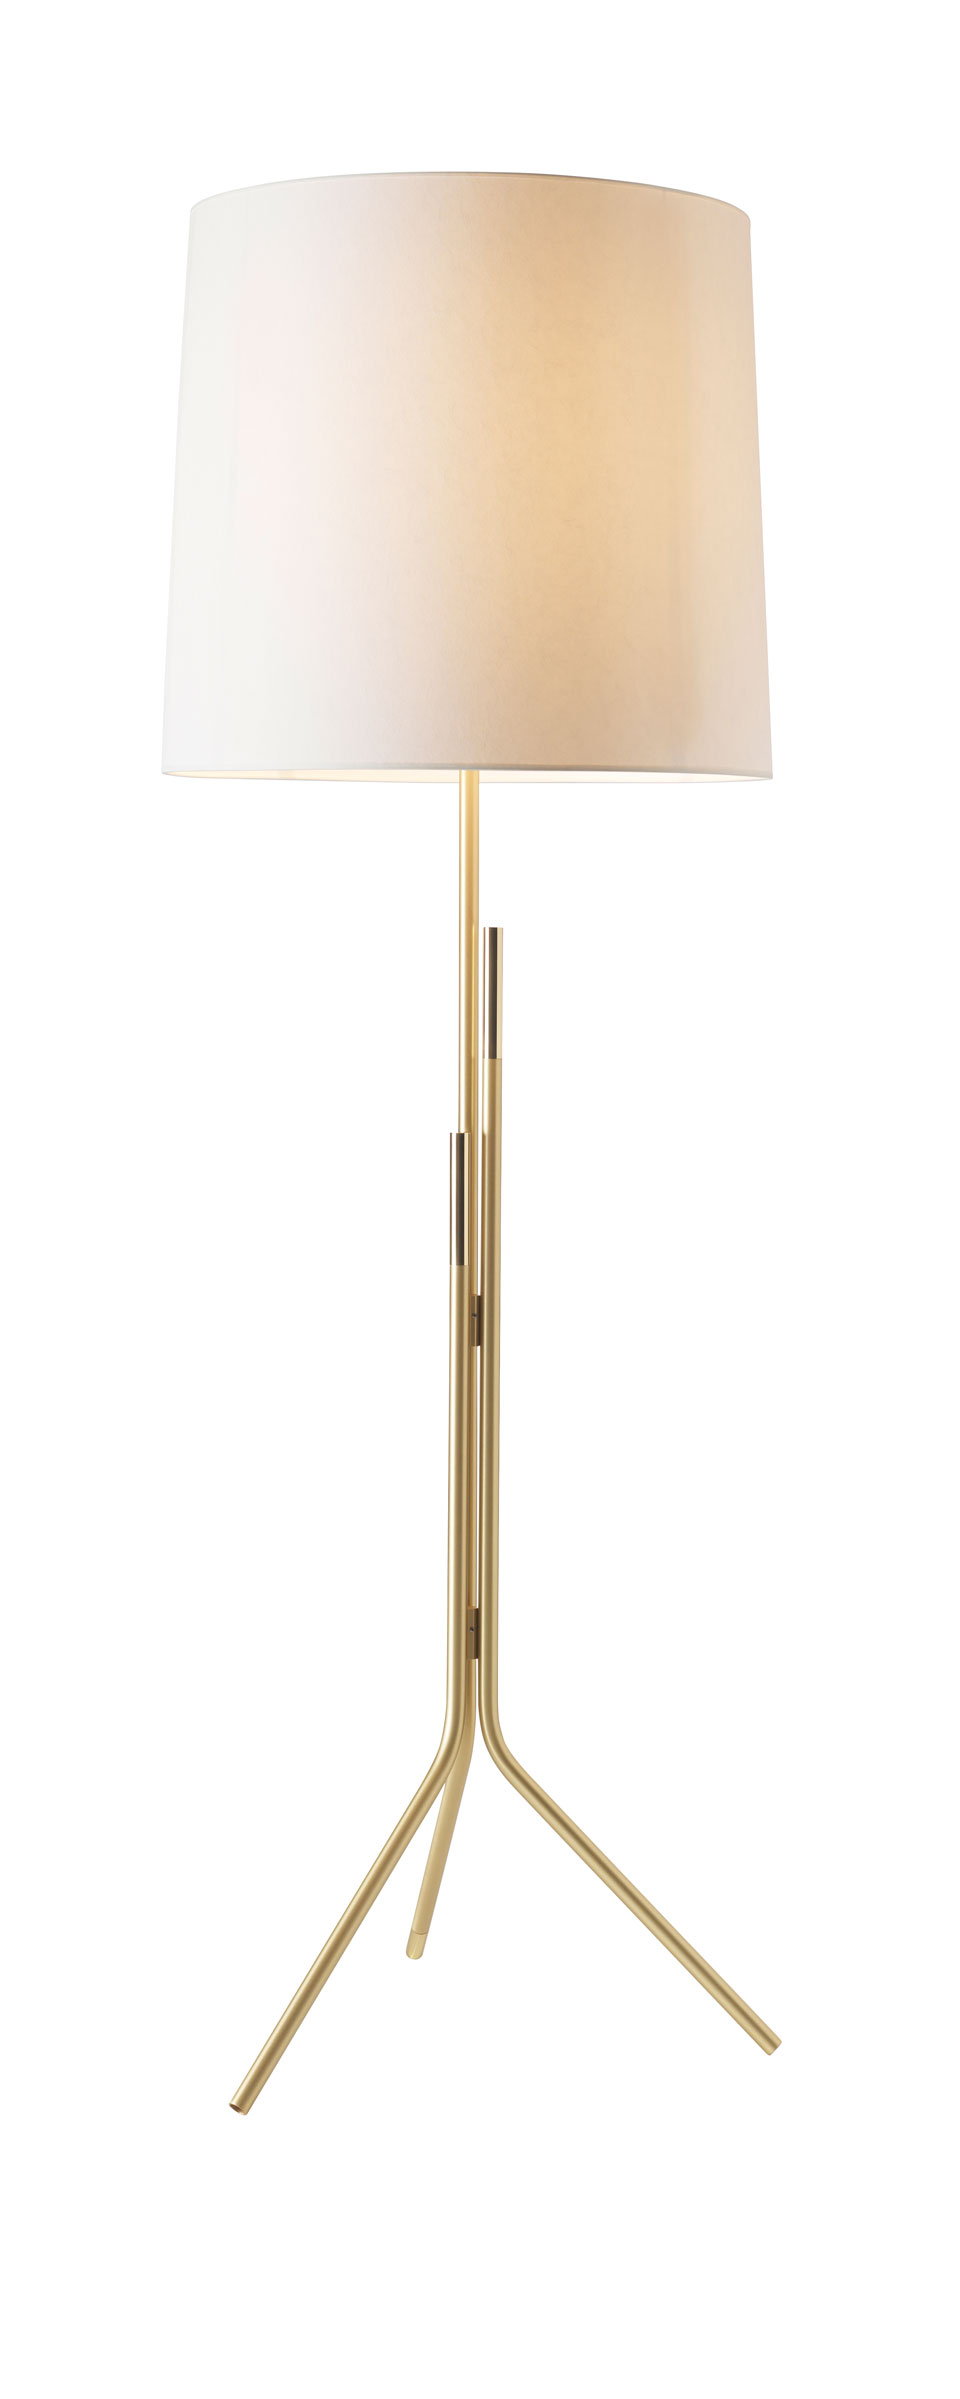 Contemporary Floor Lamp Brass Stand Cylindrical Shade In White Drop Paper Design Herv Langlais regarding size 960 X 2399